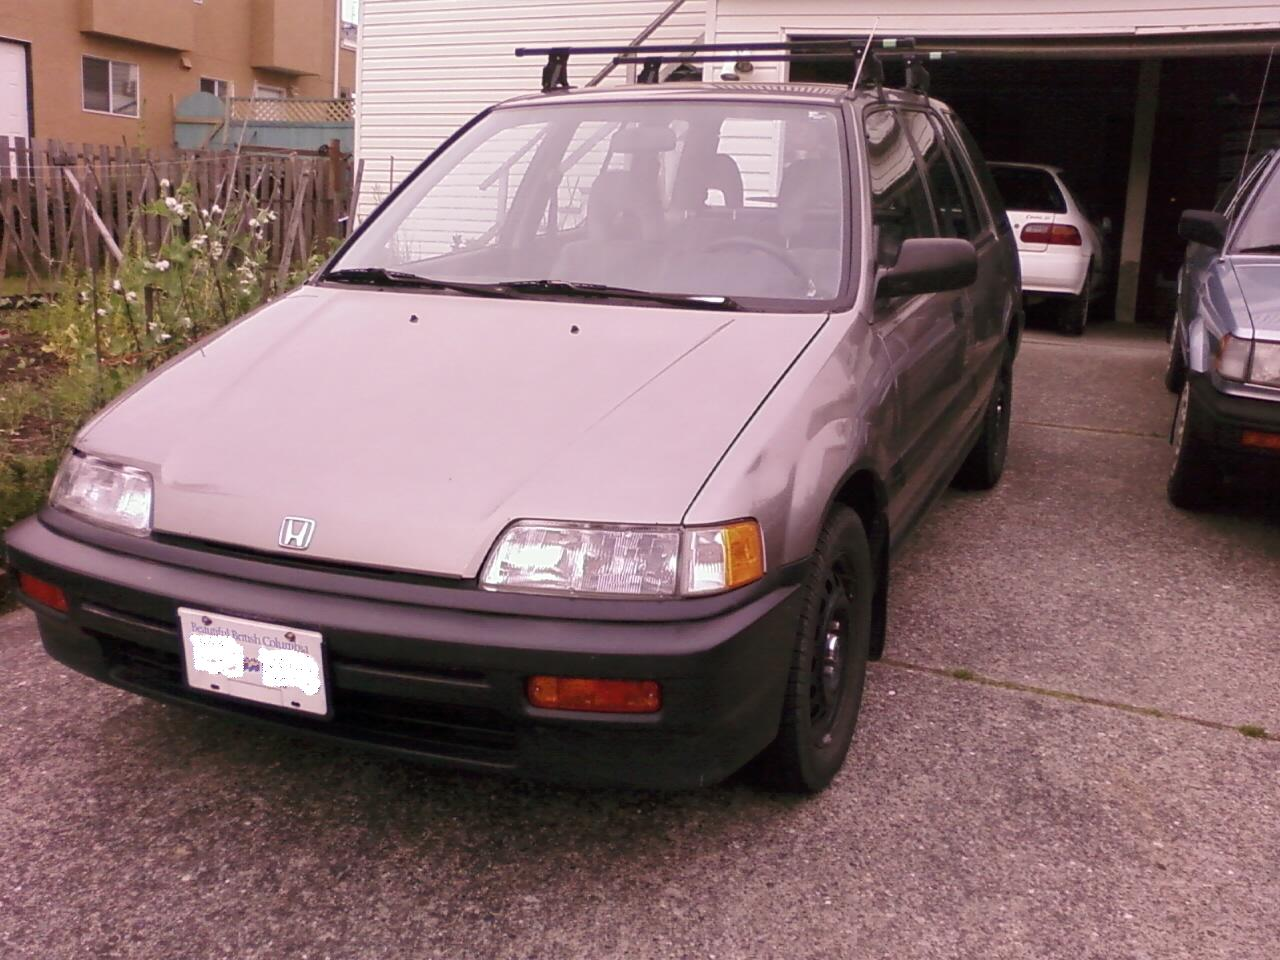 1point6eh3 39 s 1990 honda civic wagon 4d in city of parks bc. Black Bedroom Furniture Sets. Home Design Ideas